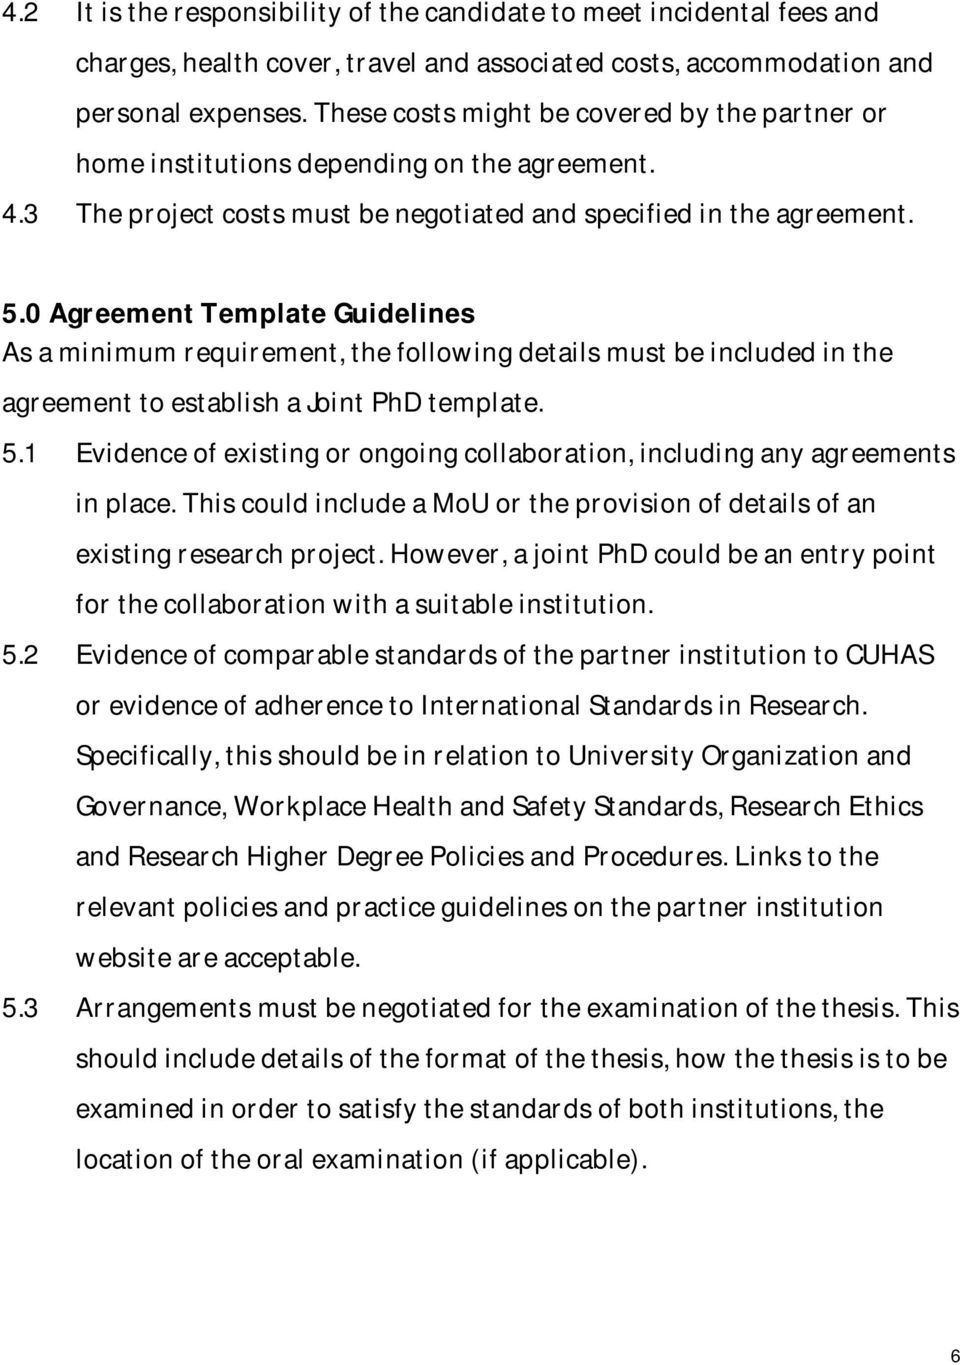 0 Agreement Template Guidelines As a minimum requirement, the following details must be included in the agreement to establish a Joint PhD template. 5.